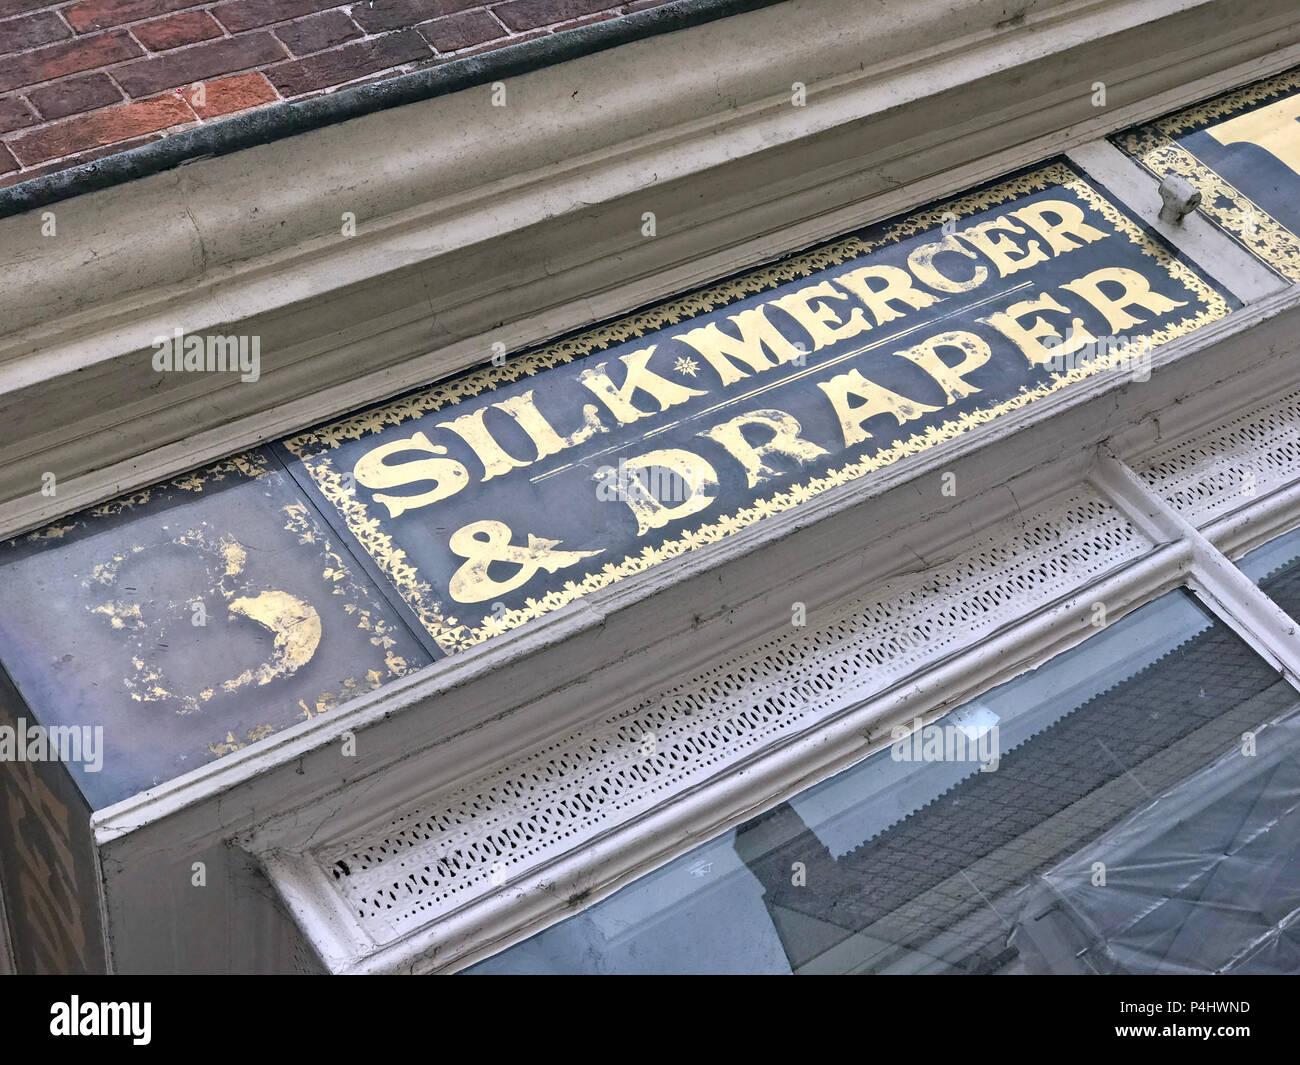 EH Hooper, Silk Mercer & Draper, Millinery & Mantles shop sign in gold lettering, 25 High Street, Bridgwater, Somerset, England, UK, TA6 3BE - Stock Image